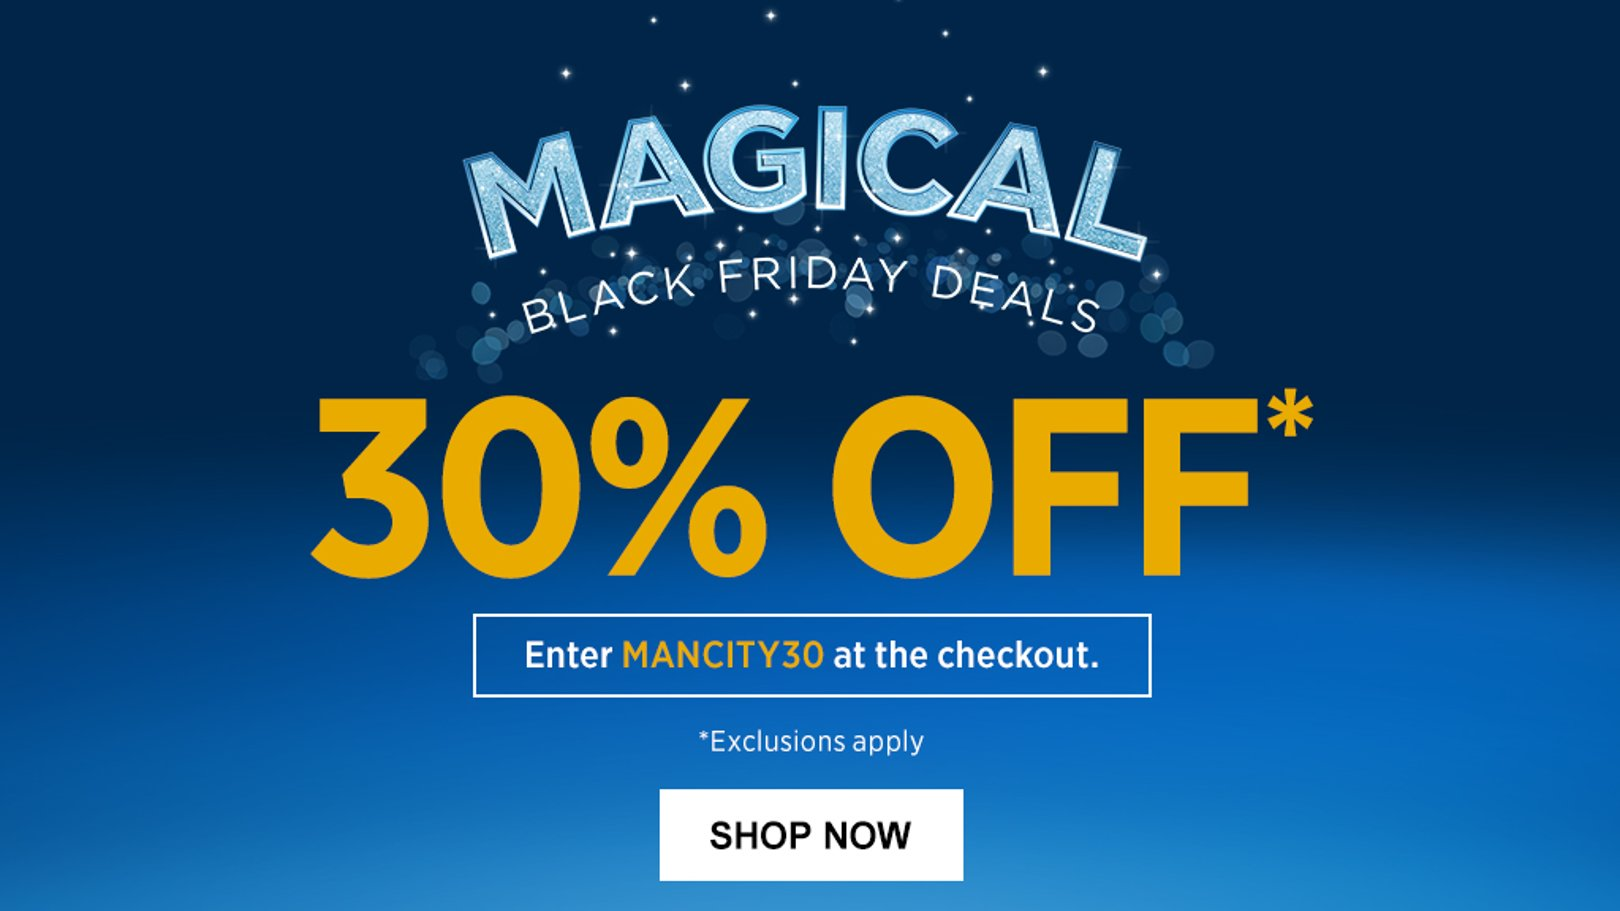 Last chance to get your Black Friday deals!